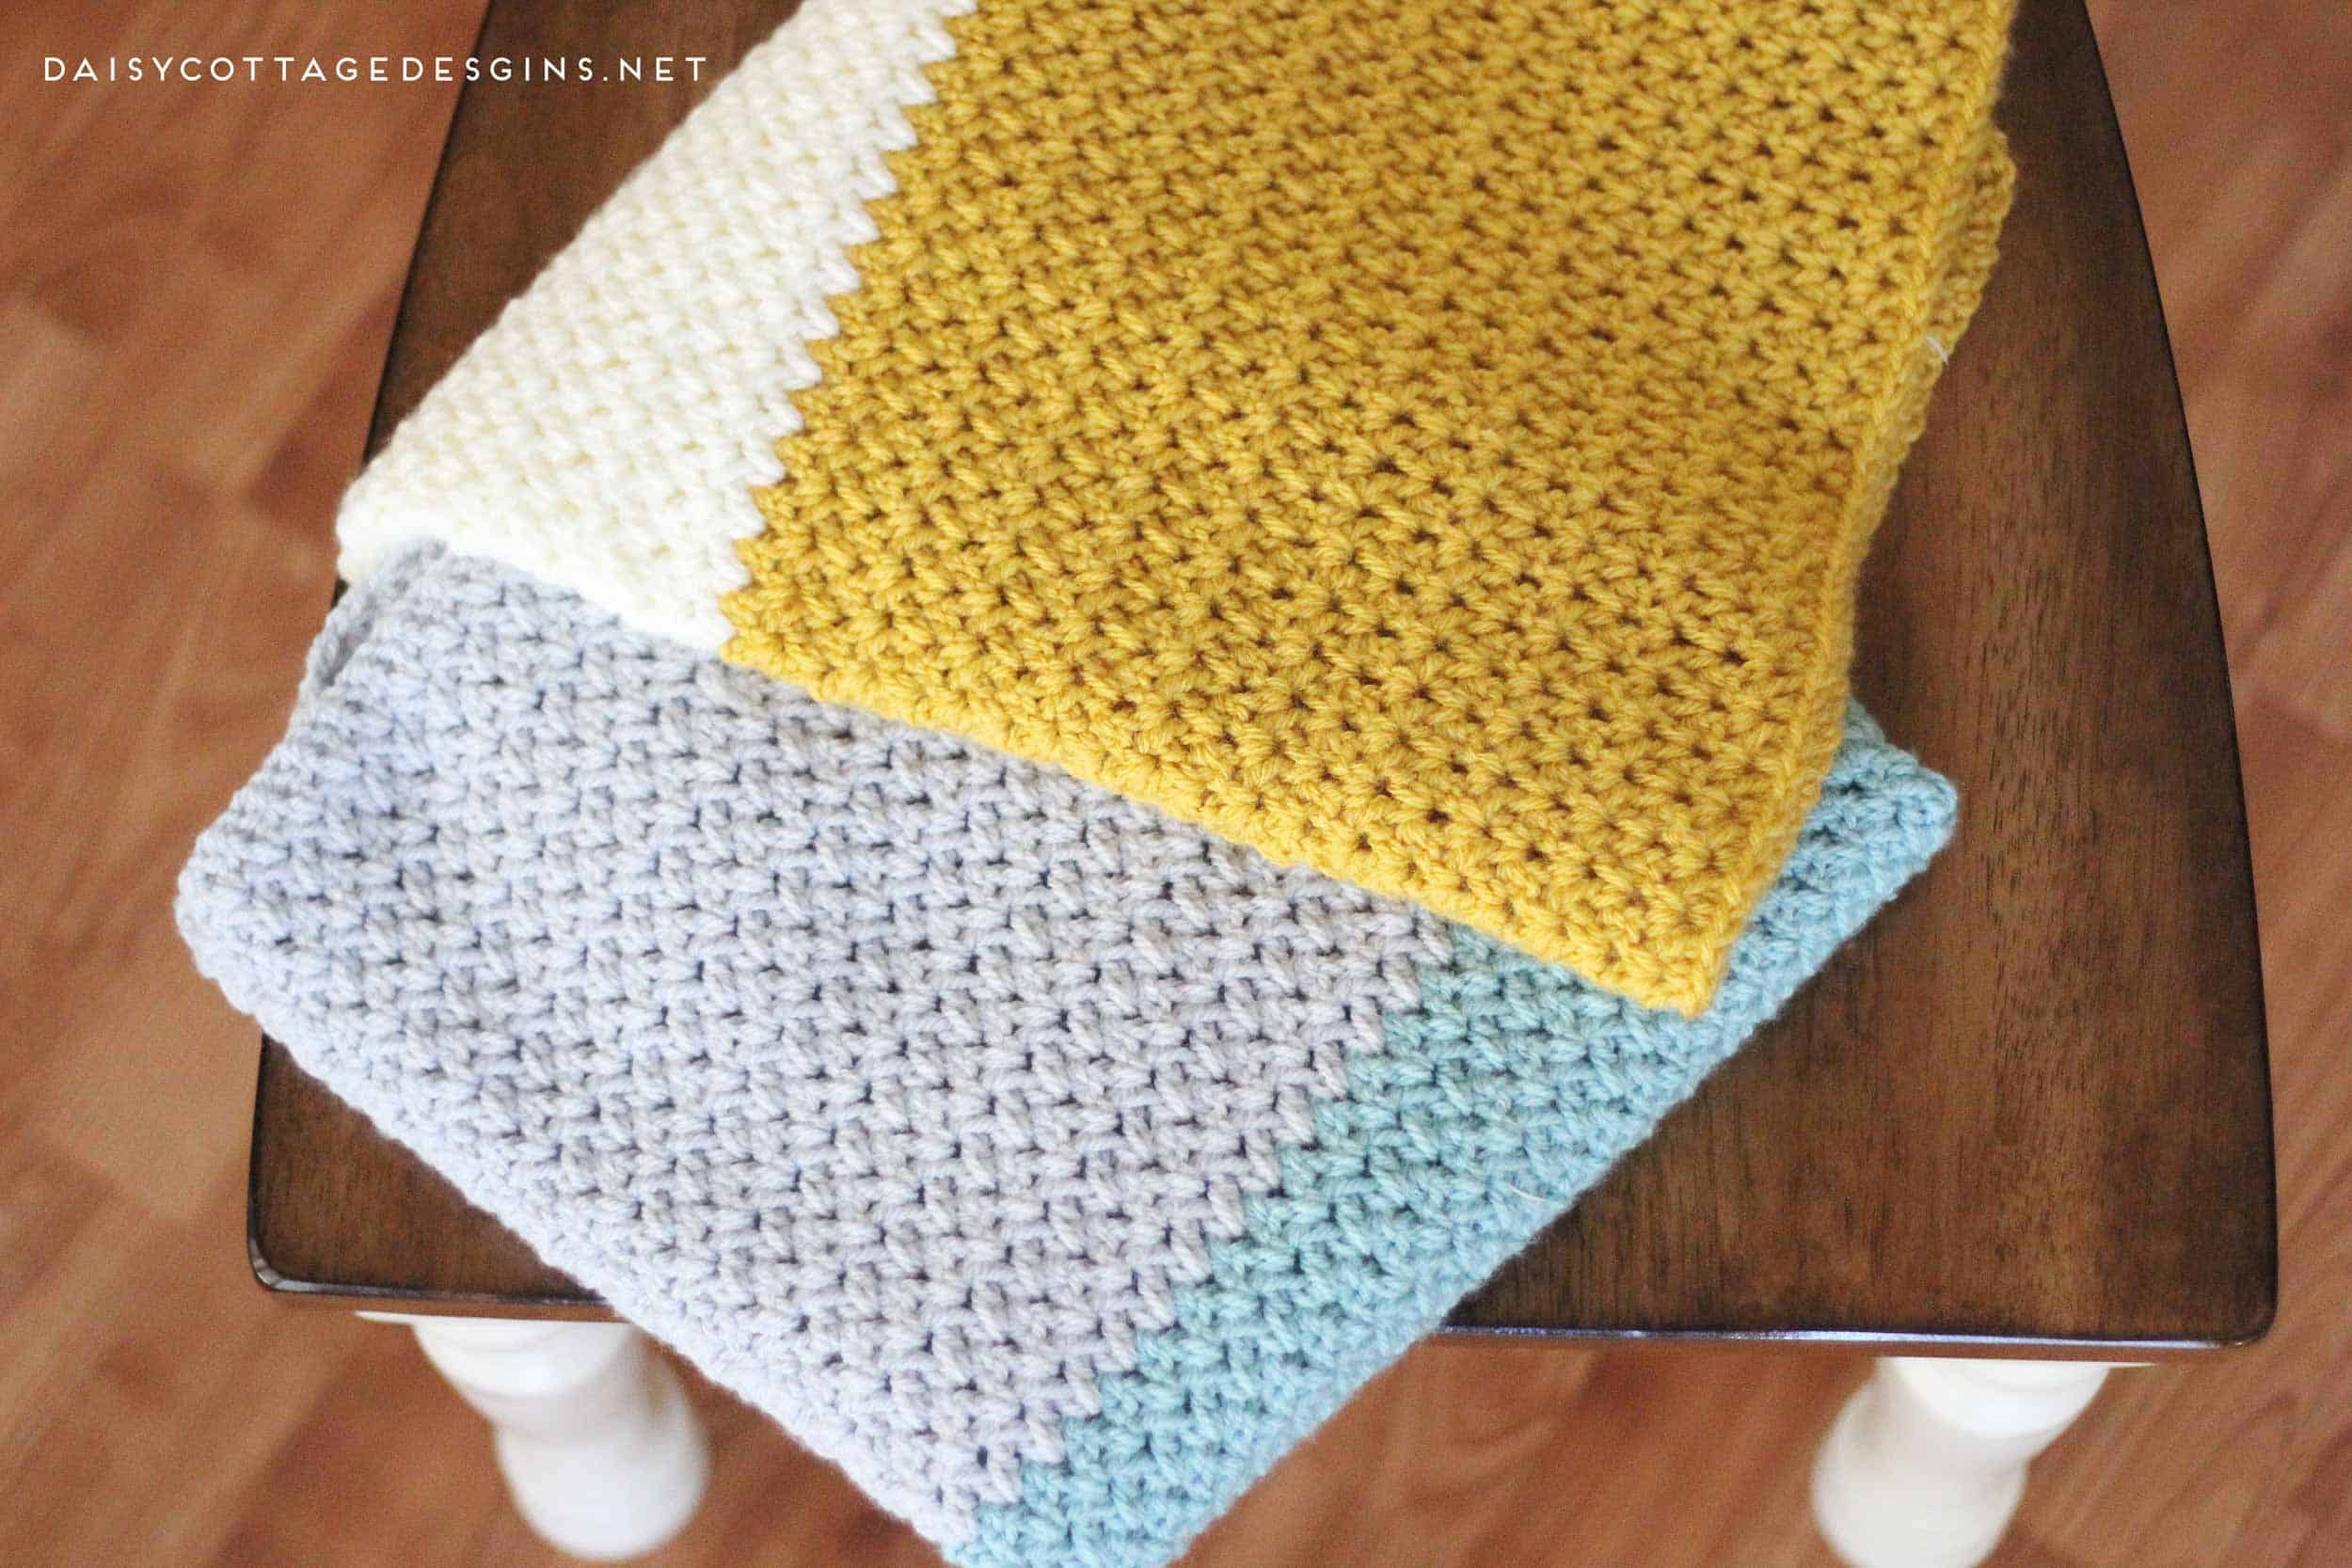 Color Block Blanket Crochet Pattern Daisy Cottage Designs